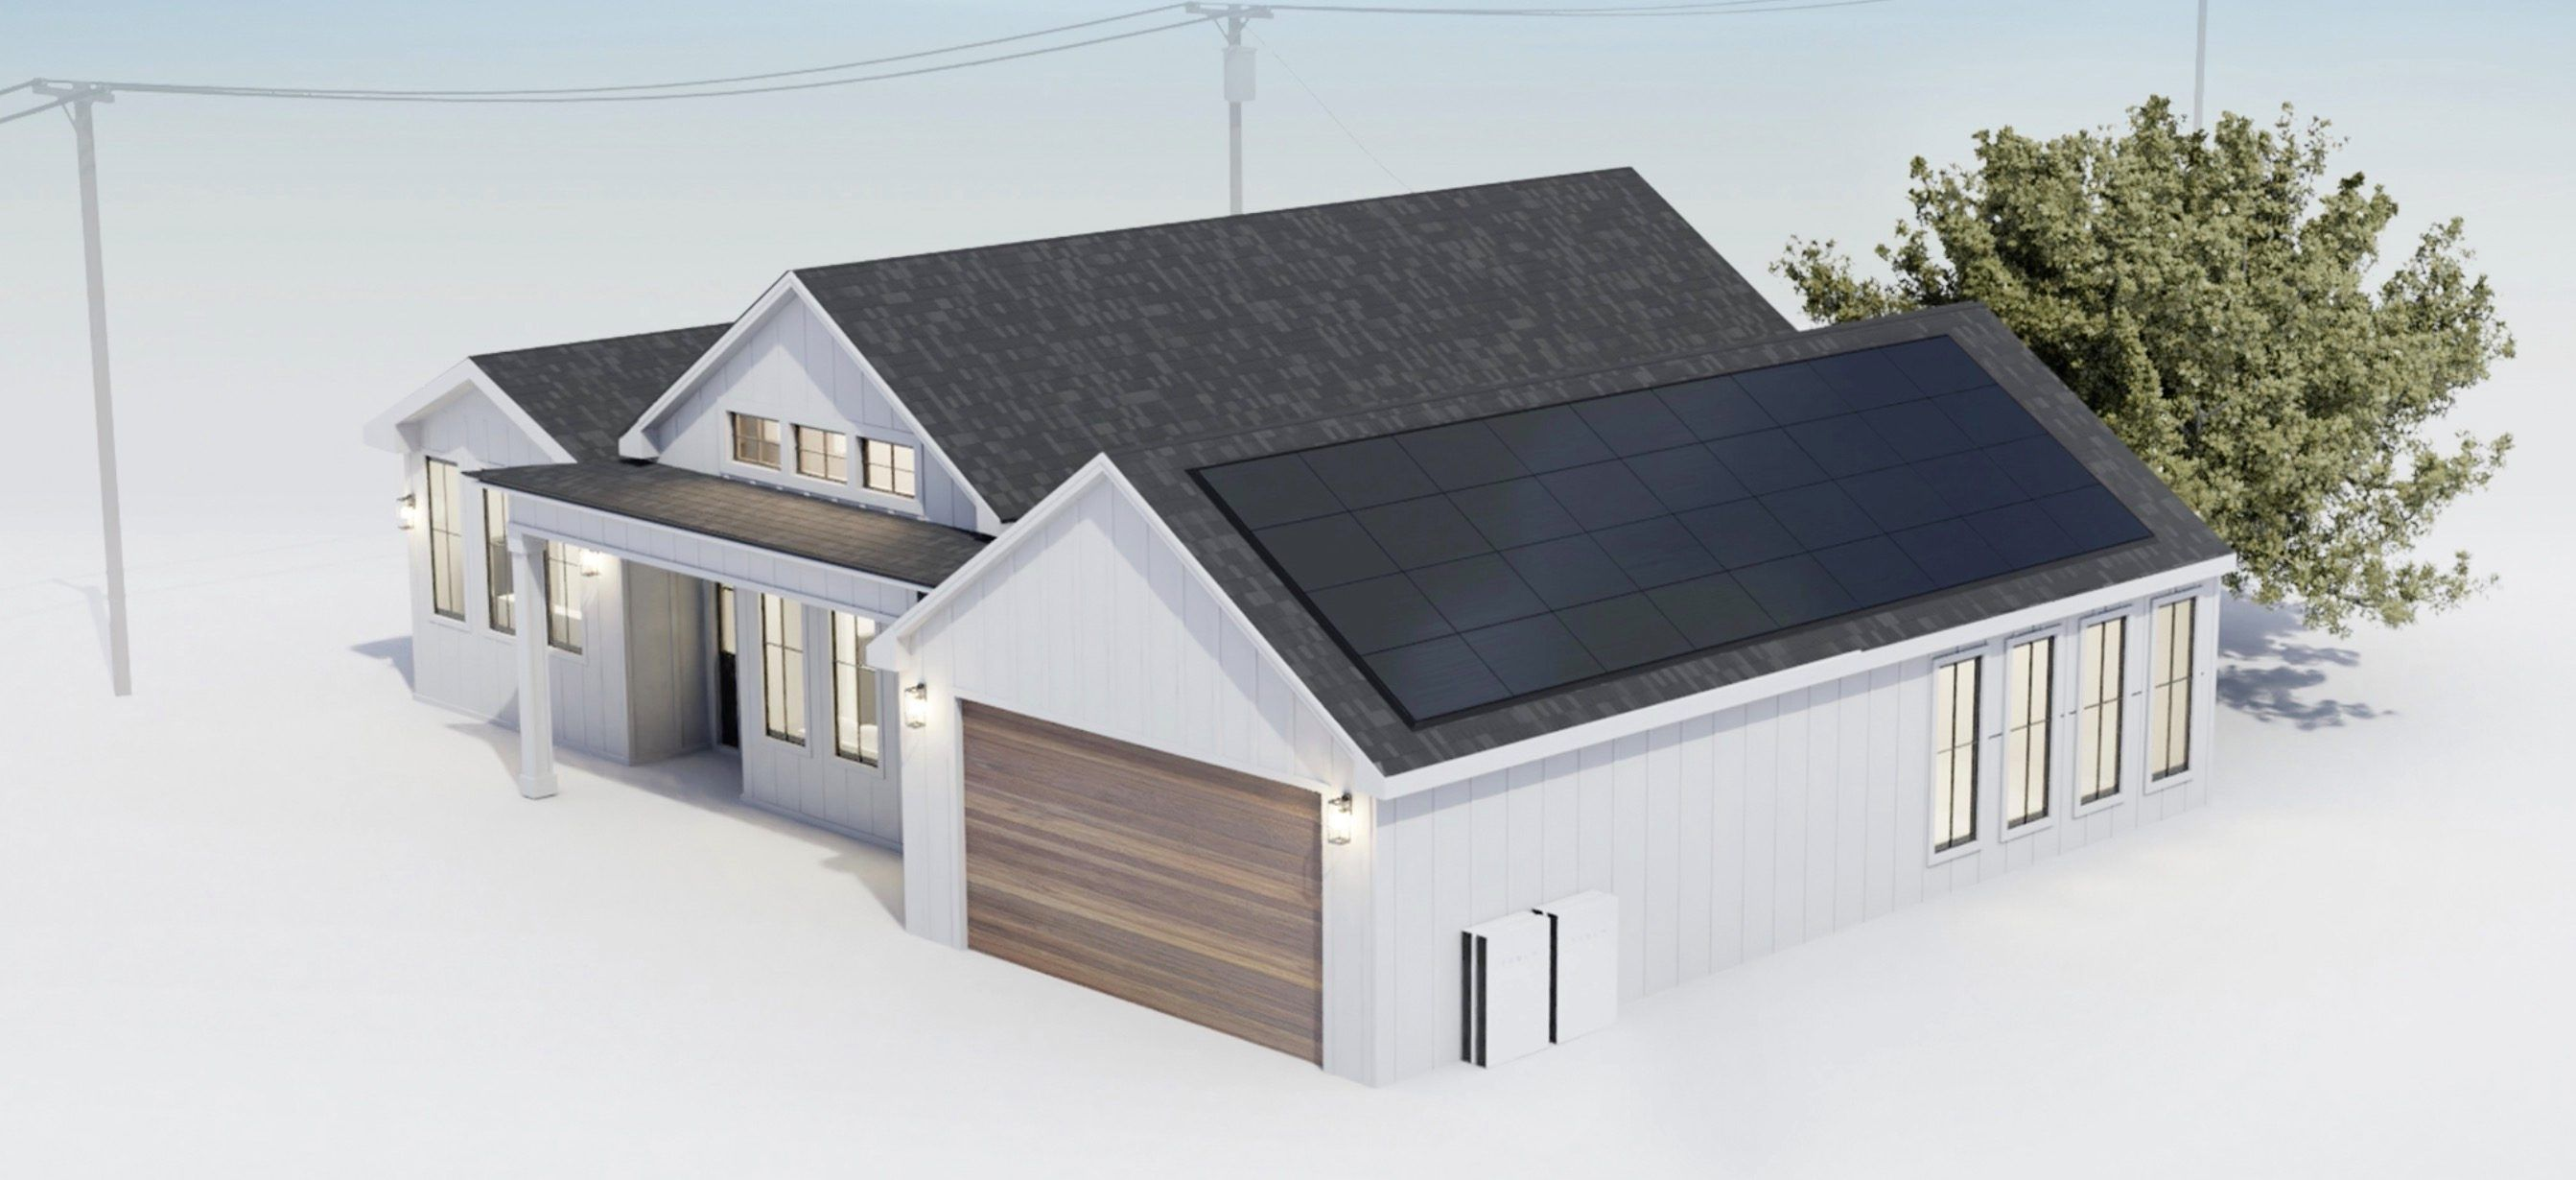 Tesla Is Considering A Home Energy Package With Solar Powerwall Ev Charger Bundle Https T Co Ca3qn2uvab By Fredericlambert Bjmt In 2020 Powerwall Solar Tesla